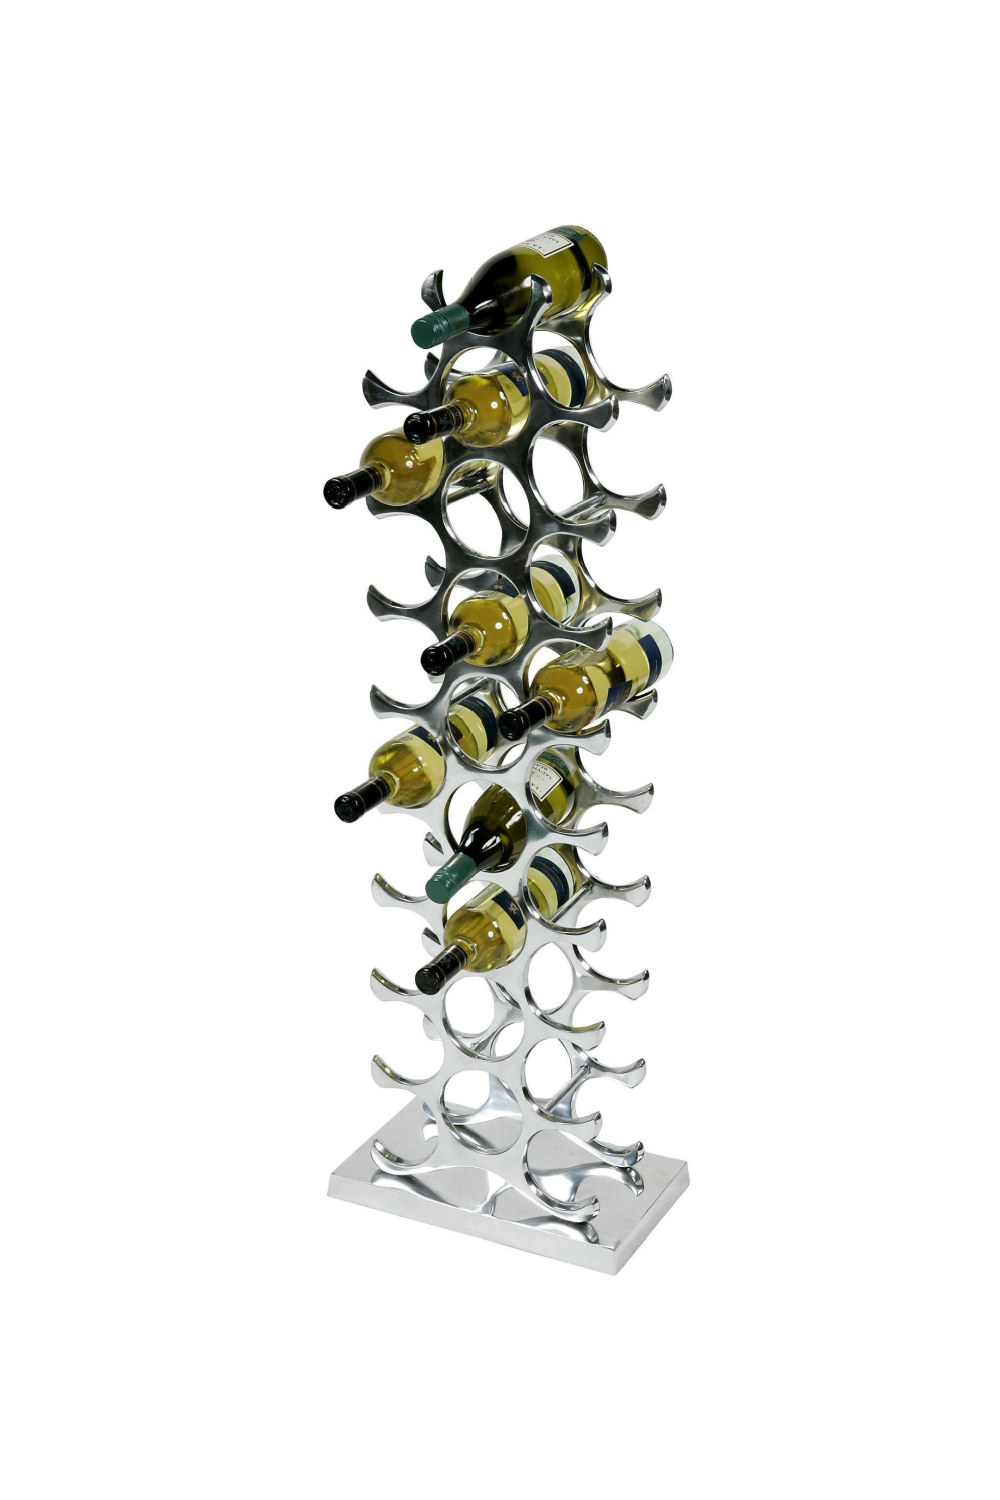 27 Bottles Wine Rack | Eichholtz